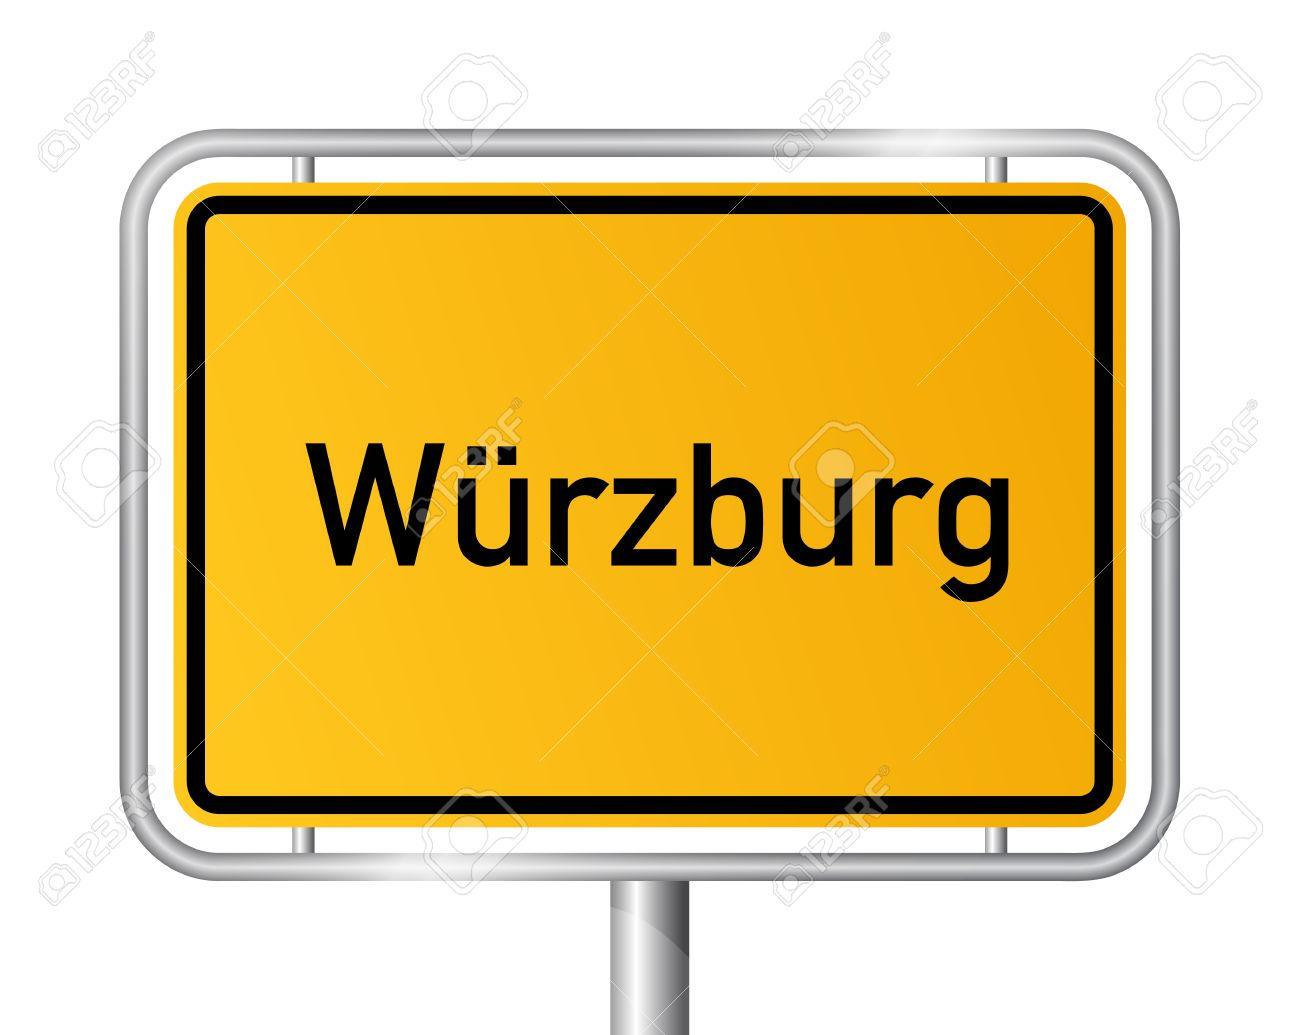 74 Wuerzburg Stock Illustrations, Cliparts And Royalty Free.